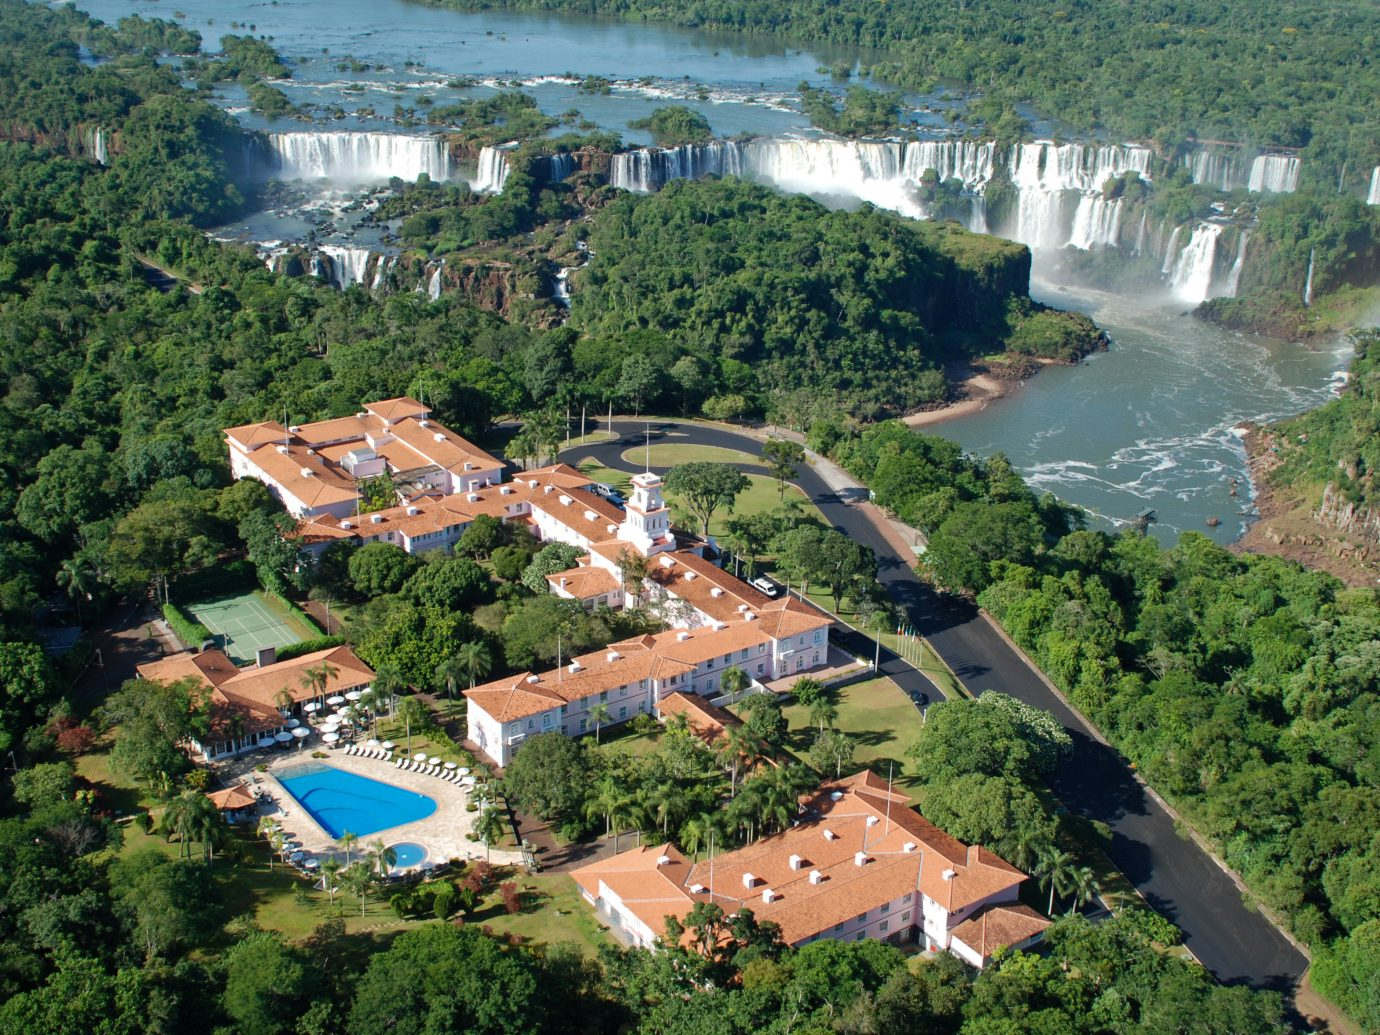 Aerial view of Belmond Hotel das Cataratas